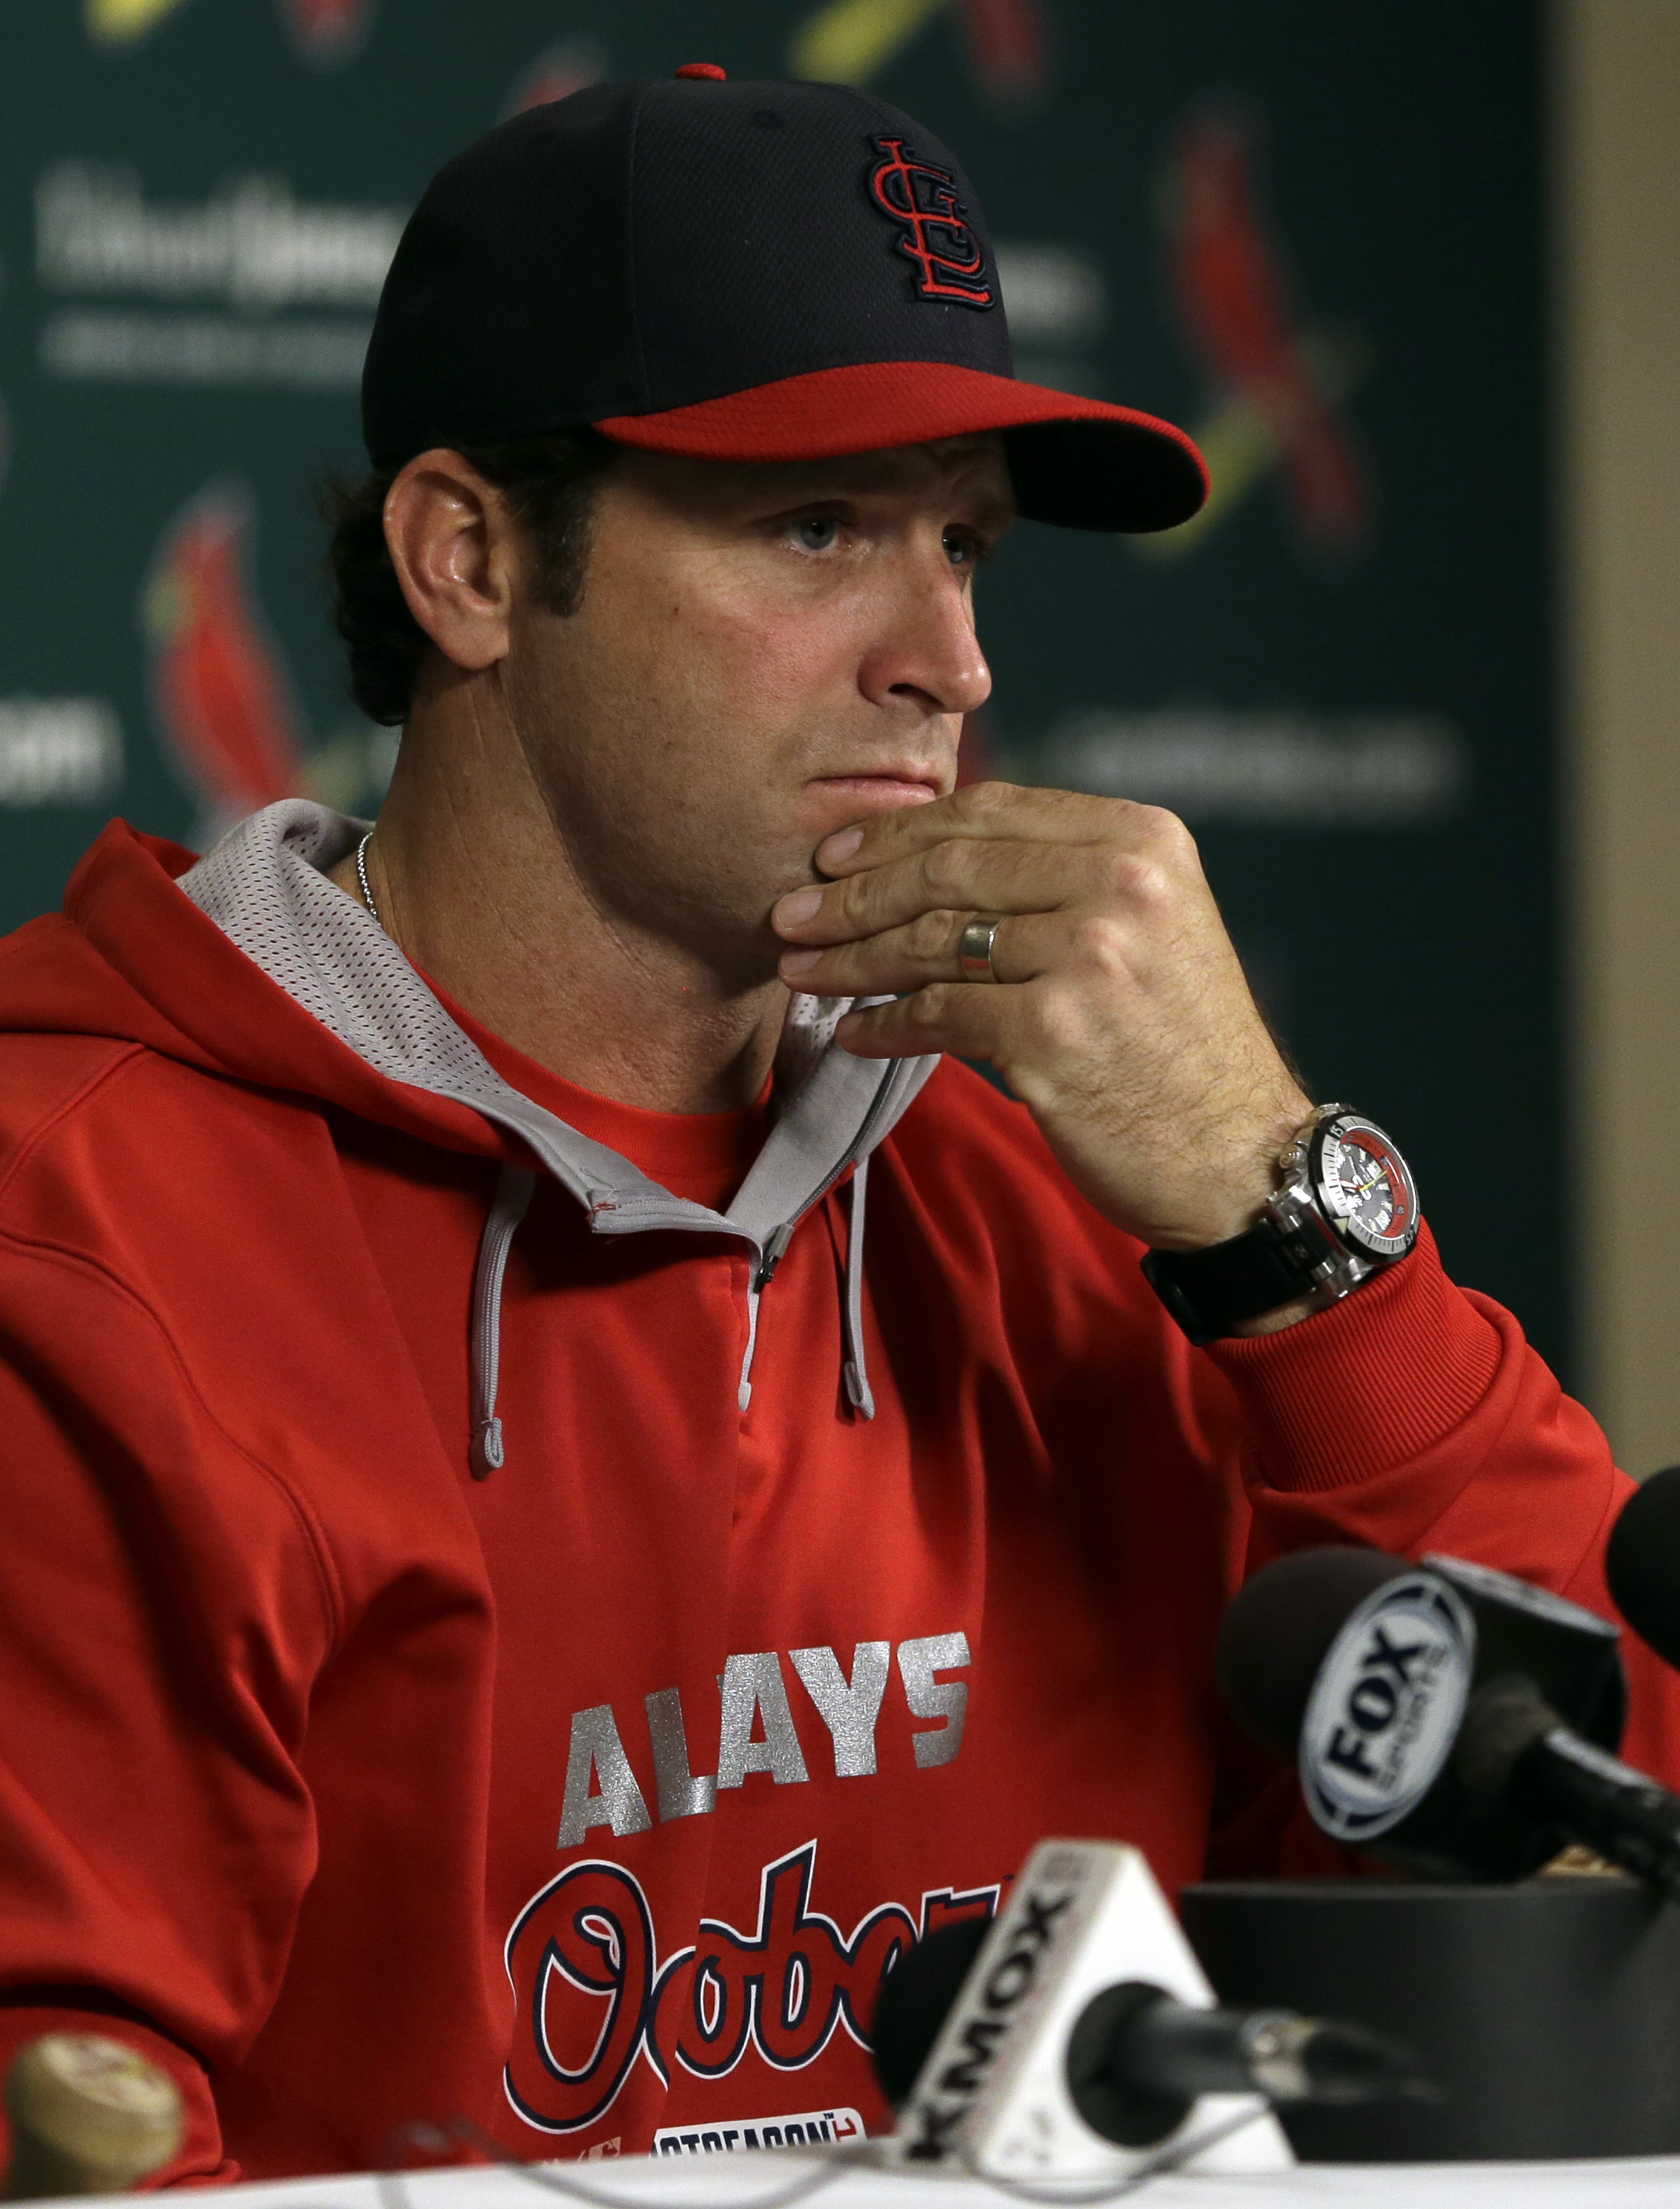 St. Louis Cardinals manager Mike Matheny. (AP Photo/Jeff Roberson)